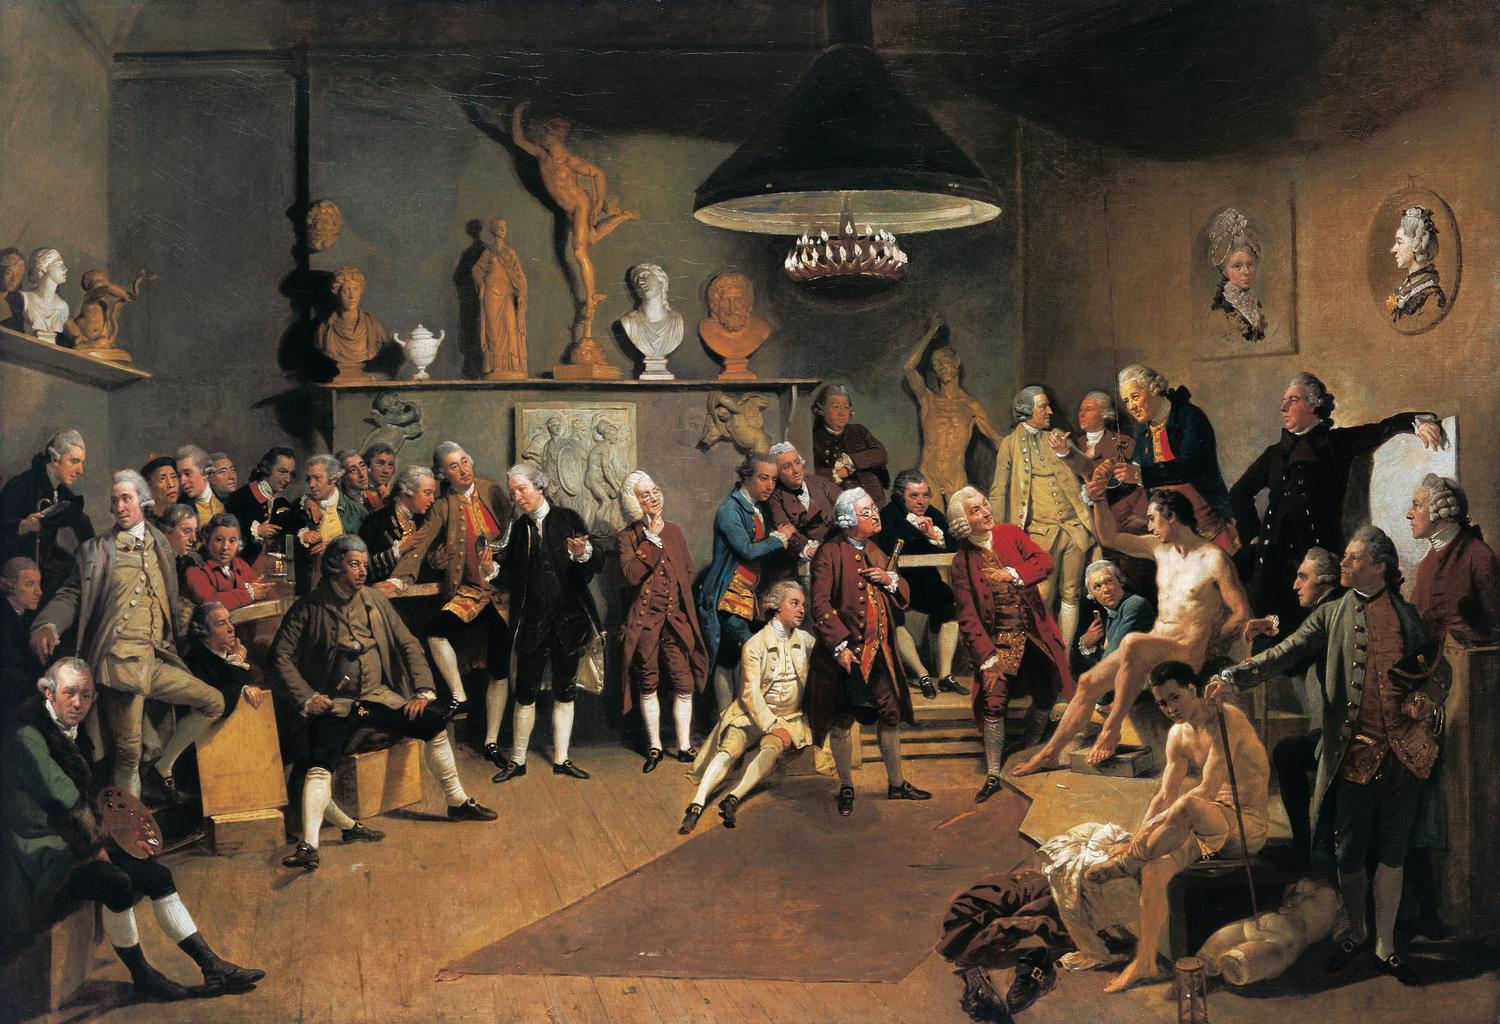 Johann Zoffany, The Academicians of the Royal Academy, 1771–72 © The Royal Collection / Wikimedia Commons